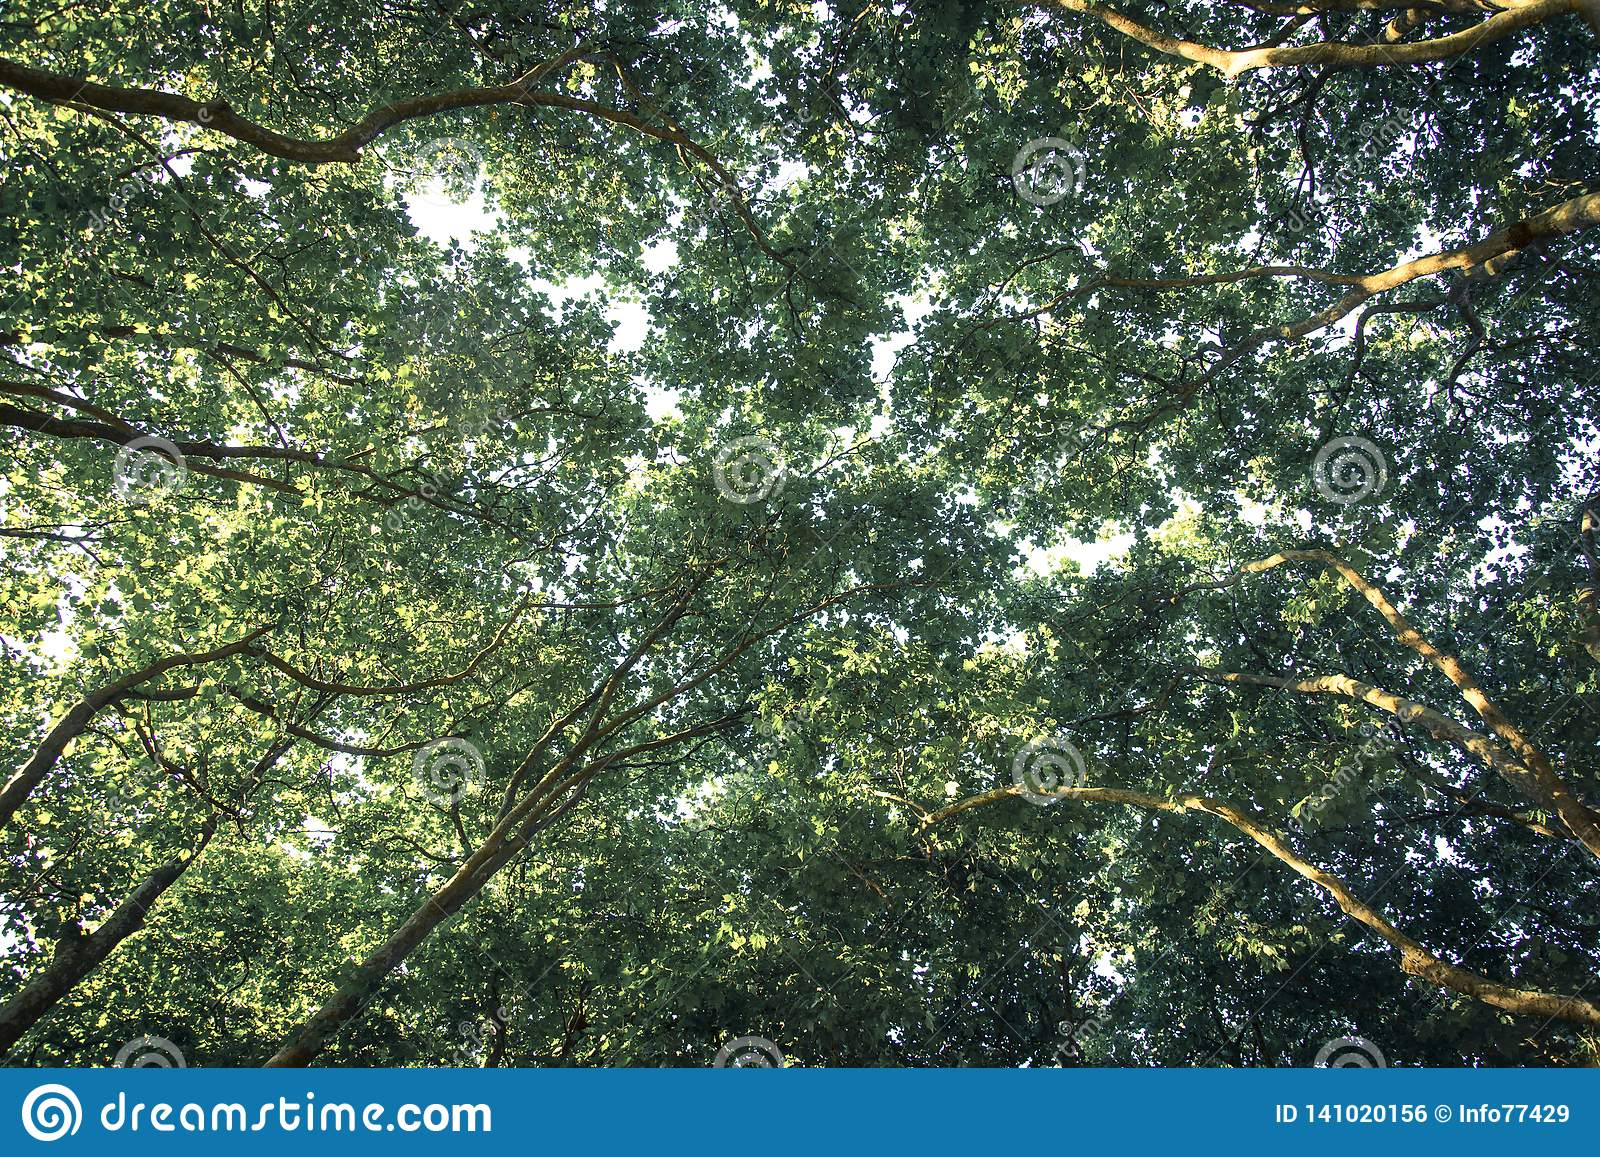 Canopy of Plane trees branches in the summer